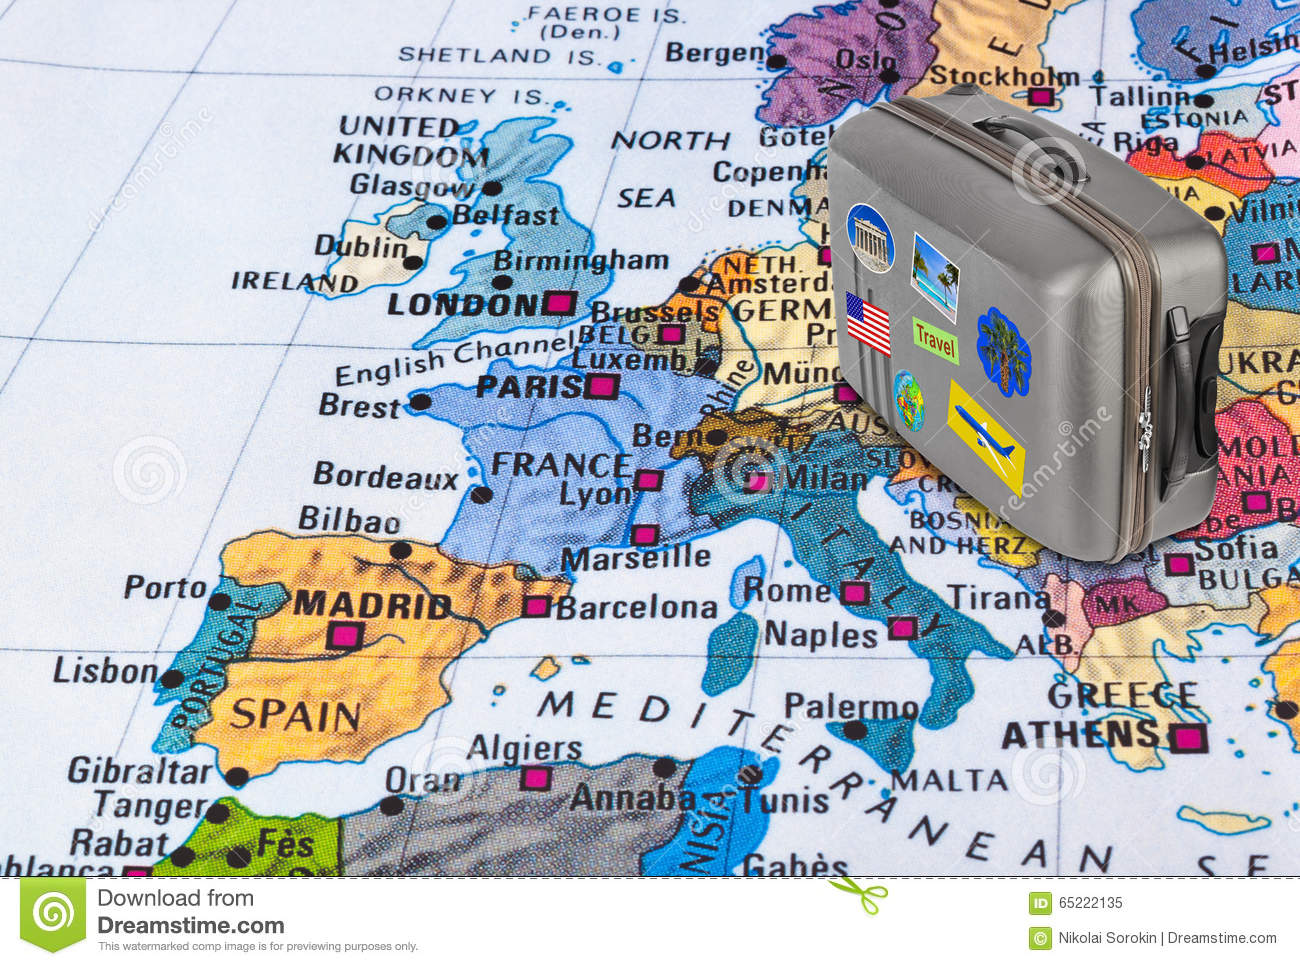 Europe Map And Travel Case With Stickers my Photos Photo – Travel Map Of Europe